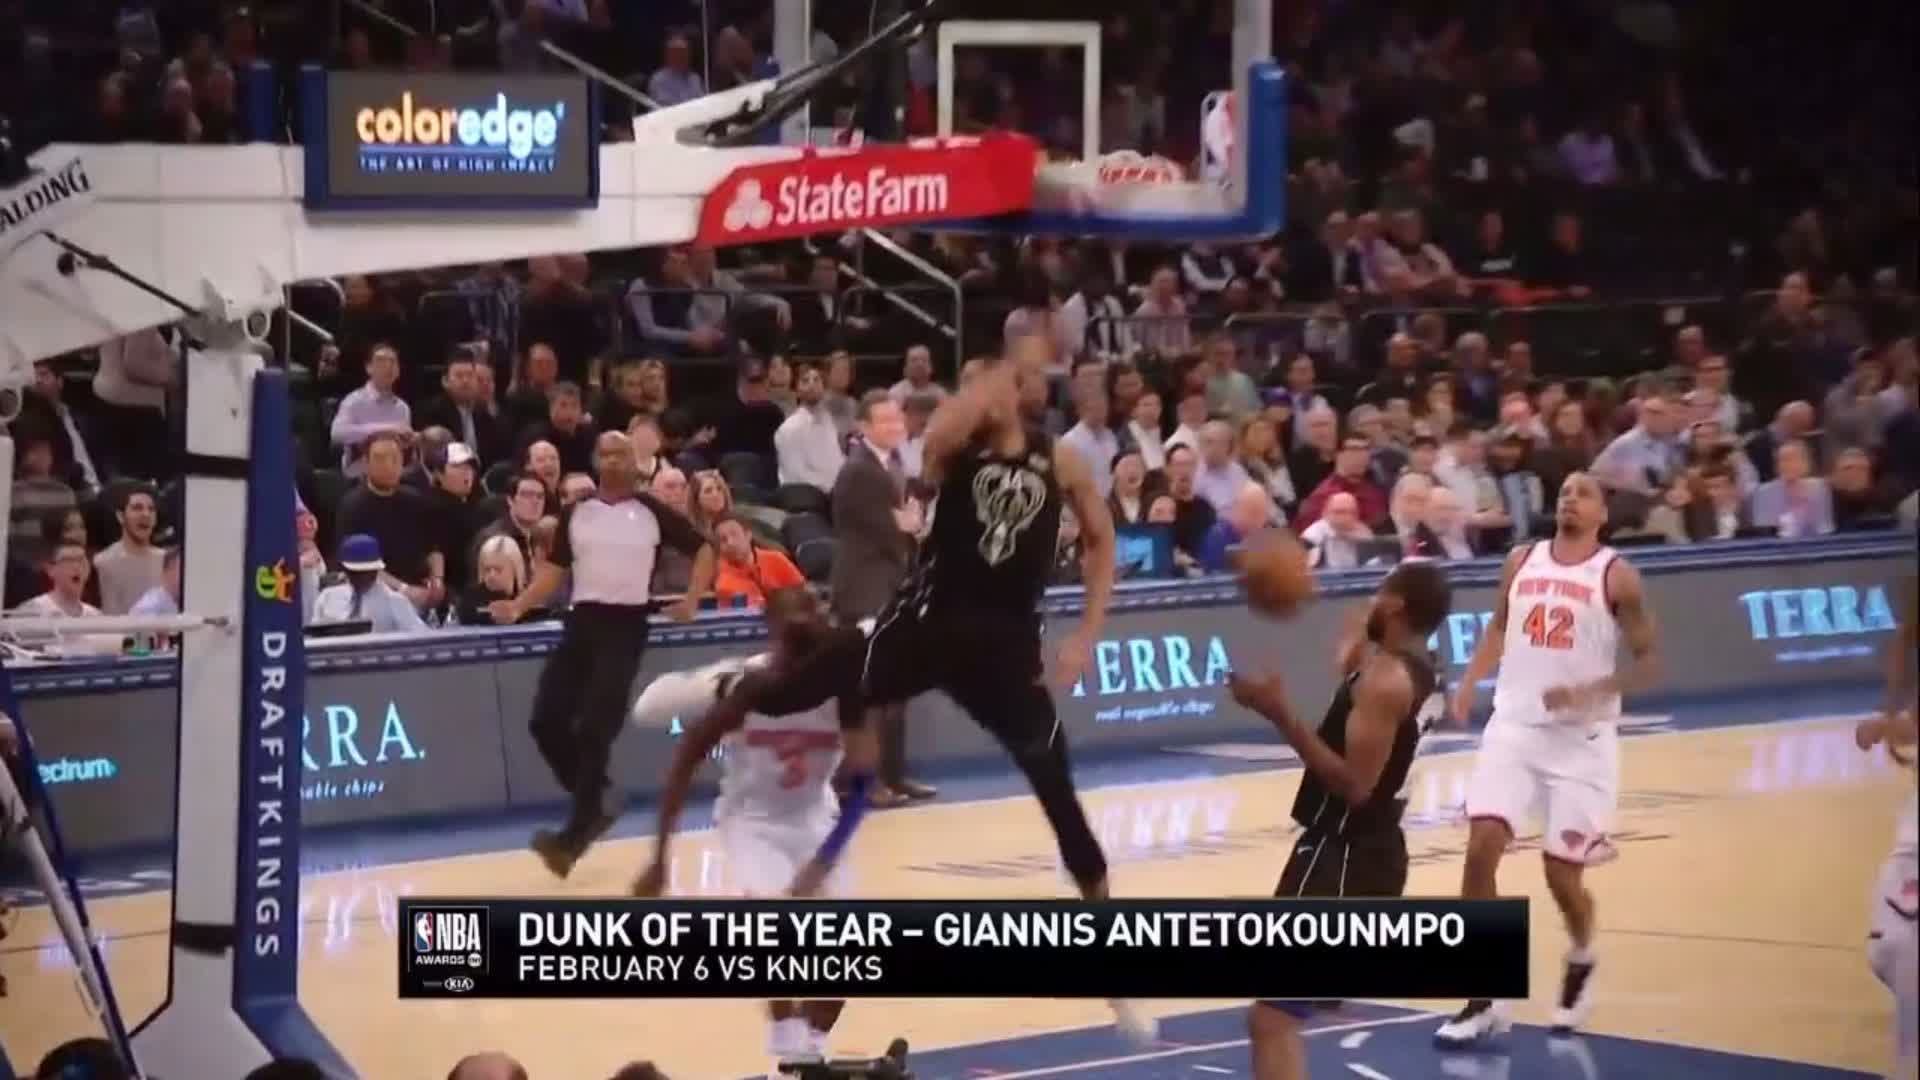 .@Giannis_An34 of the @Bucks wins the 2018 #DunkofTheYear! ������  #NBAAwards https://t.co/kWezu0mdVP